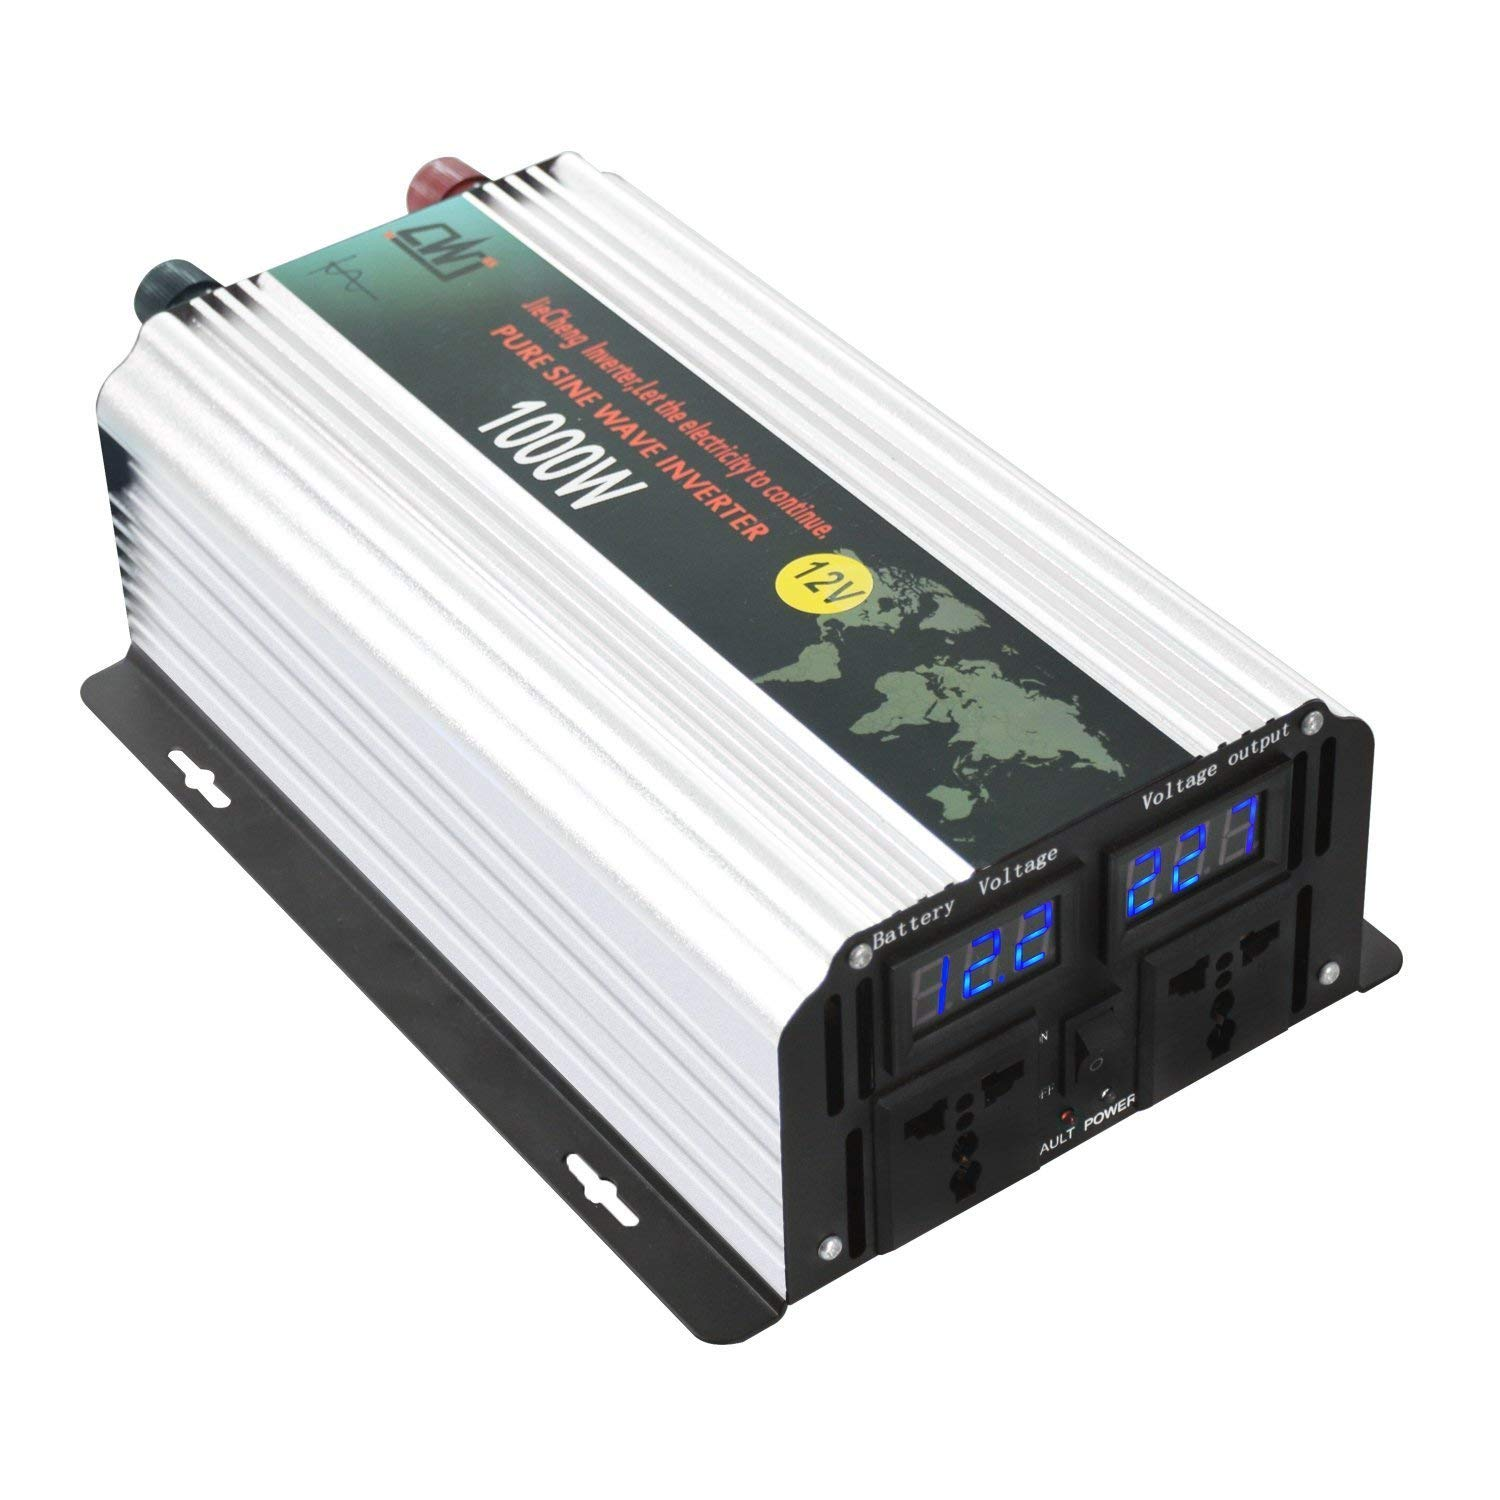 Pure Sine Wave Solar Car Power Inverter 1000W Peak 2000W 12V To AC 110V 120V High Efficient DC Power Inverters With Dual AC Outlets & LCD Display For Car Solar System and Emergency